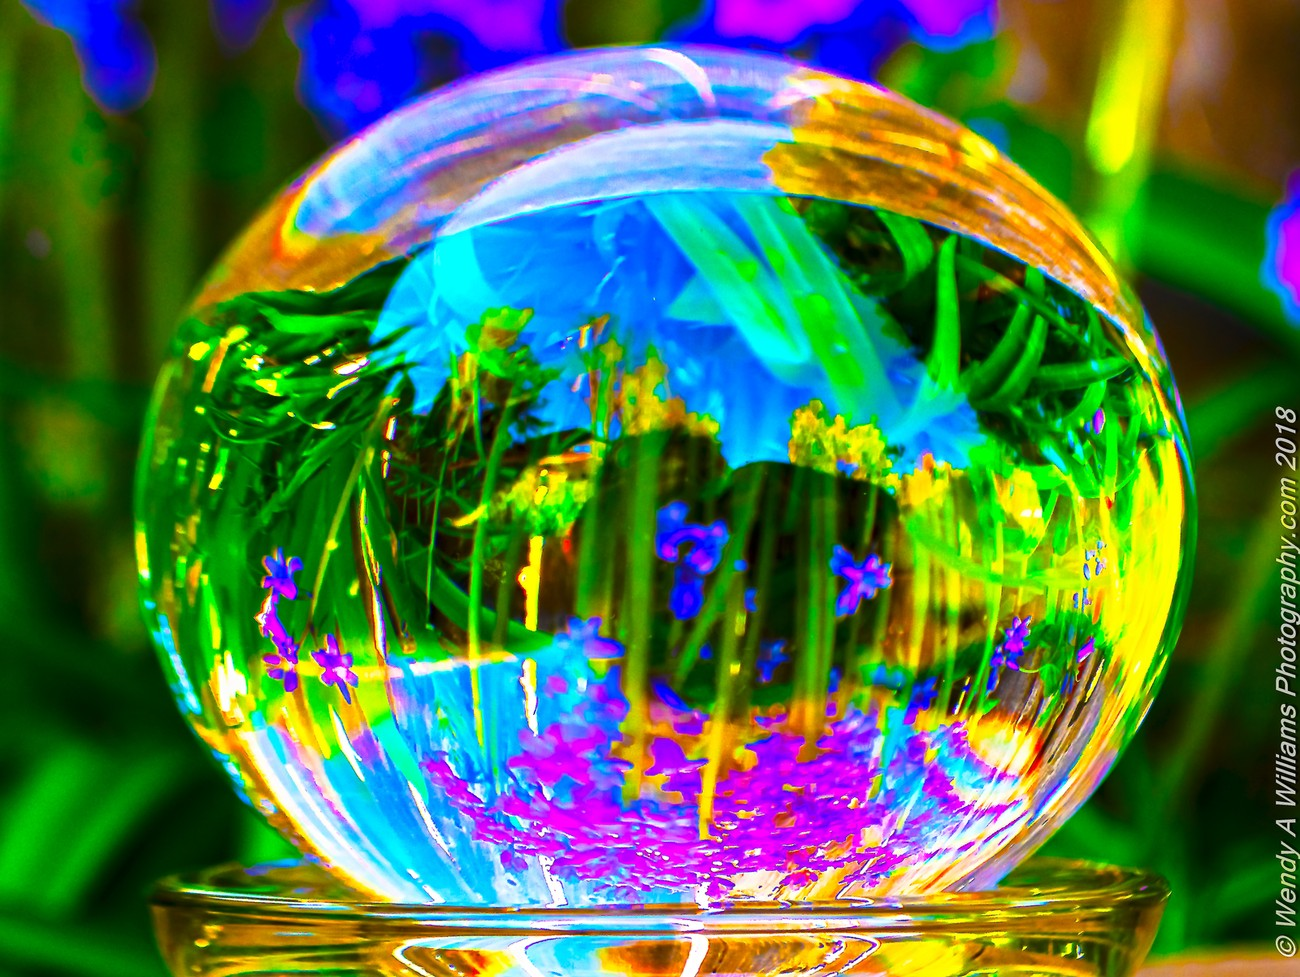 Using my Lensball to show the beauty of spring and celebrating Earth Day